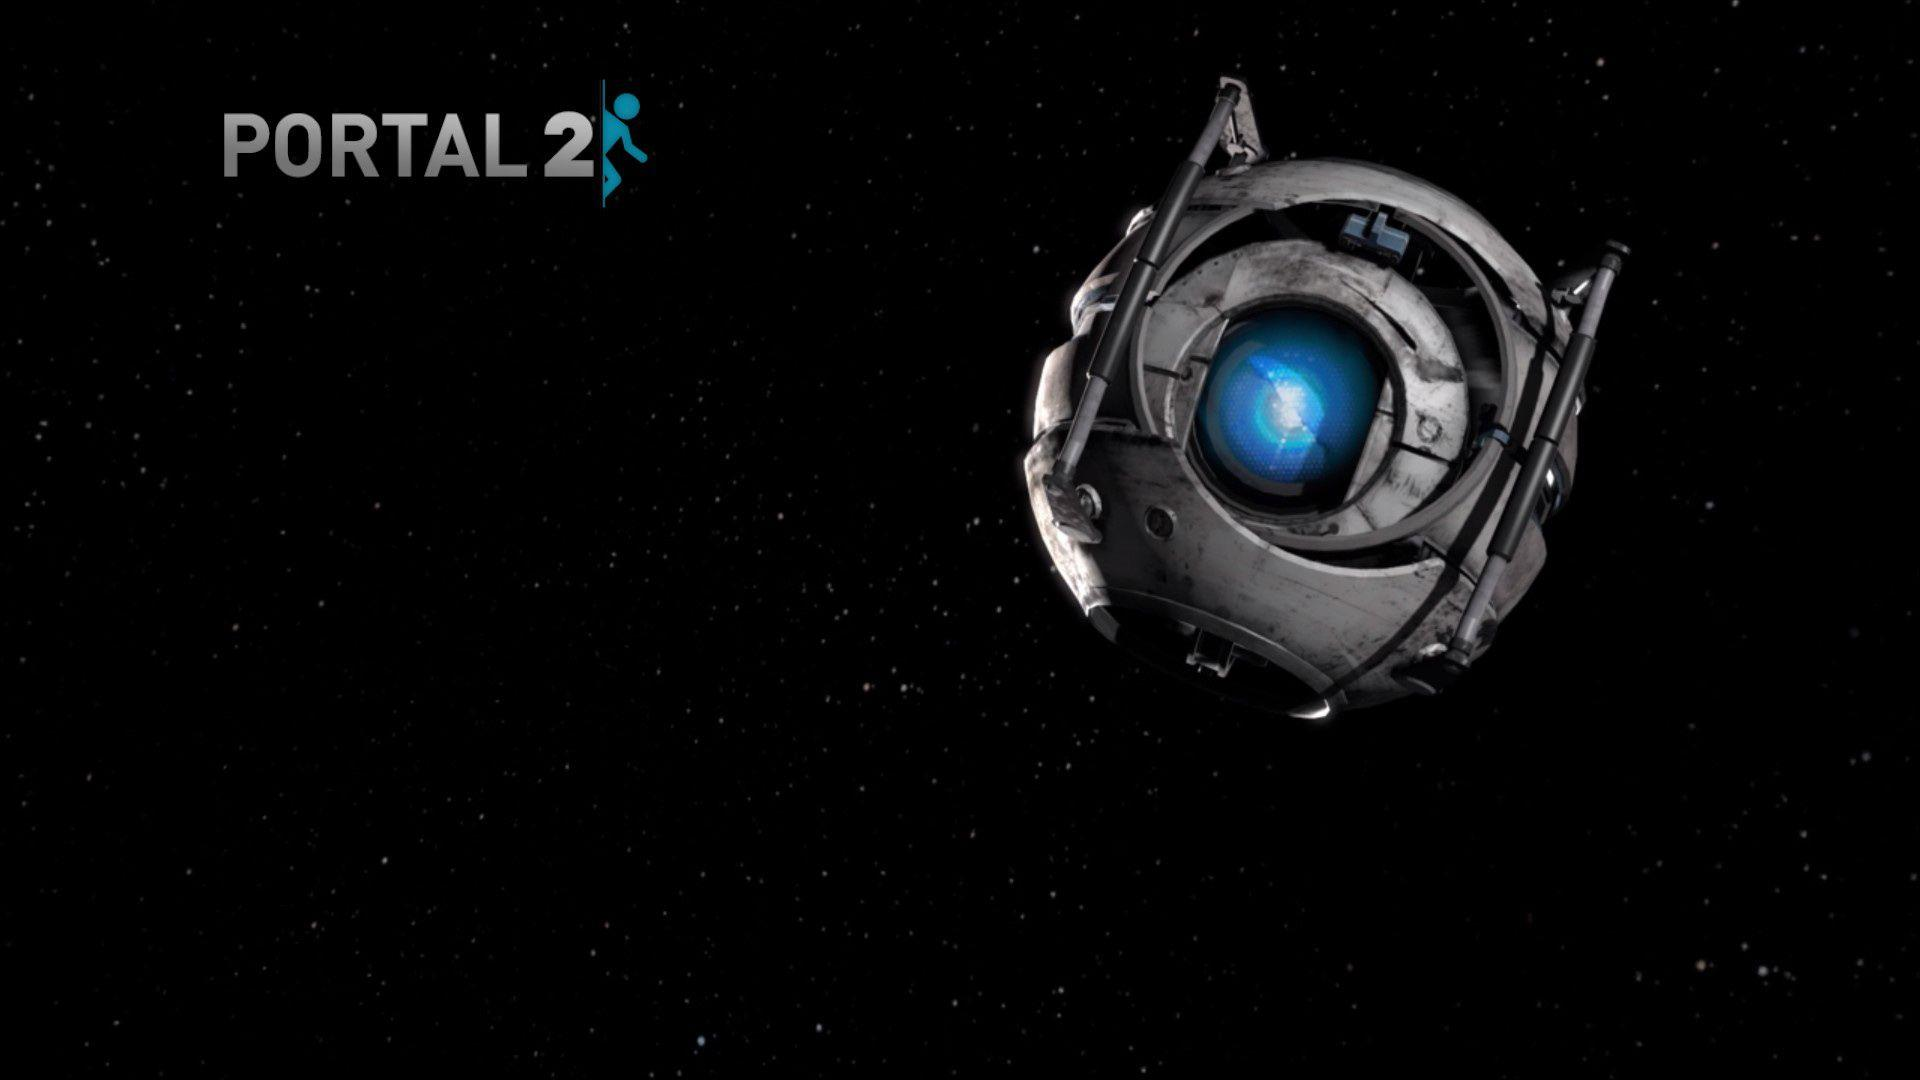 Portal 2 Hd Wallpapers and Backgrounds